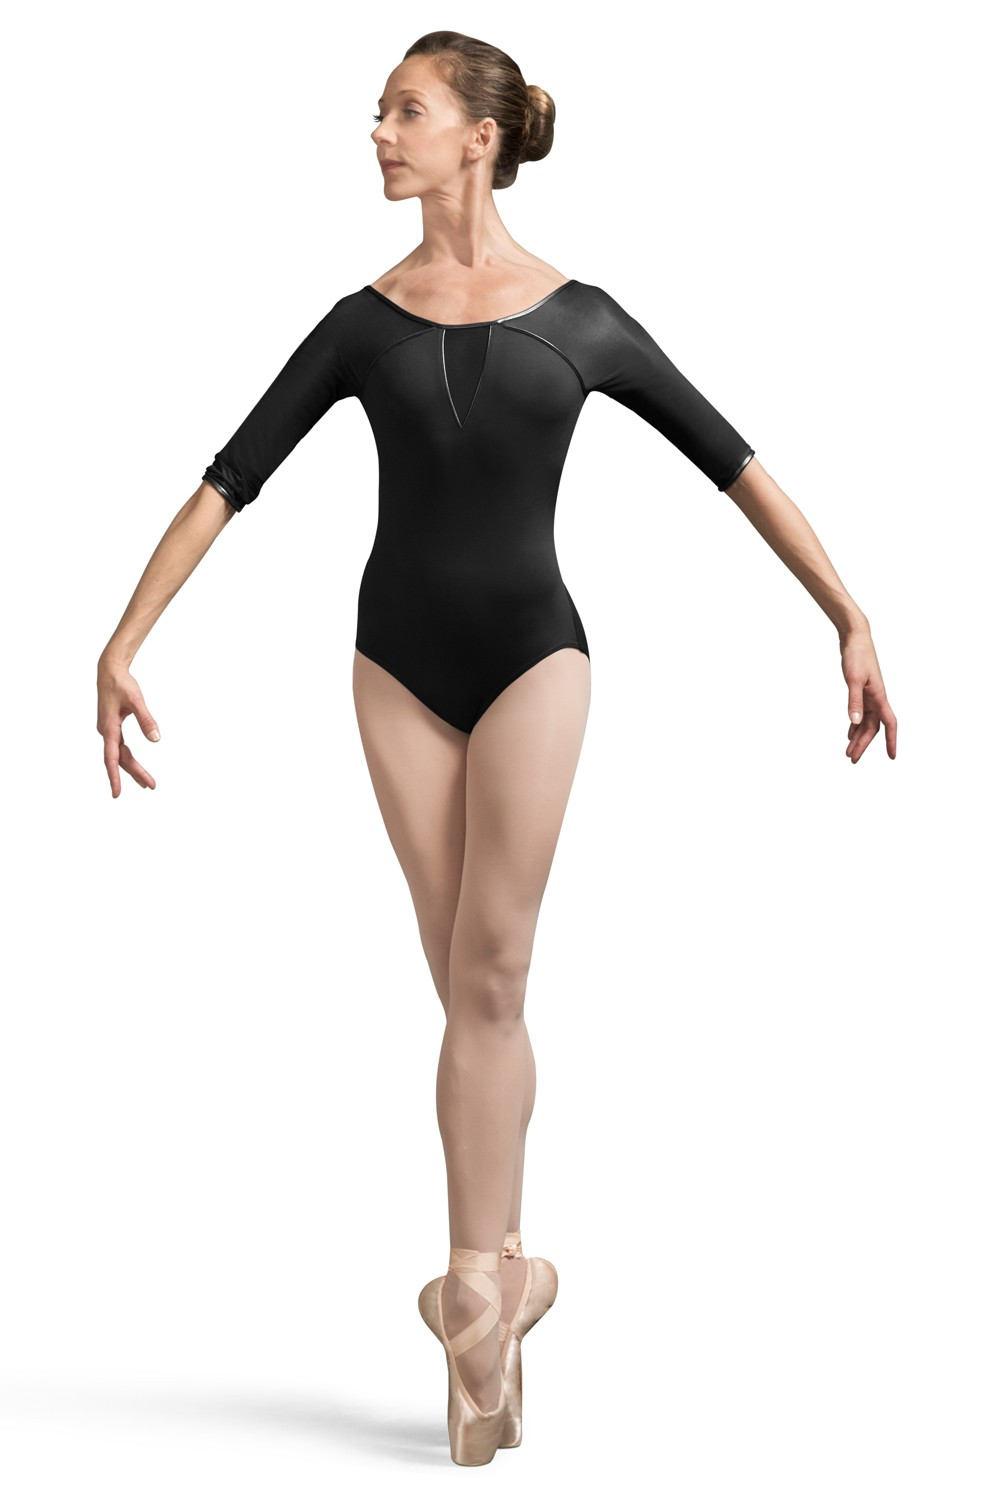 And Adult dance leotards also suggested